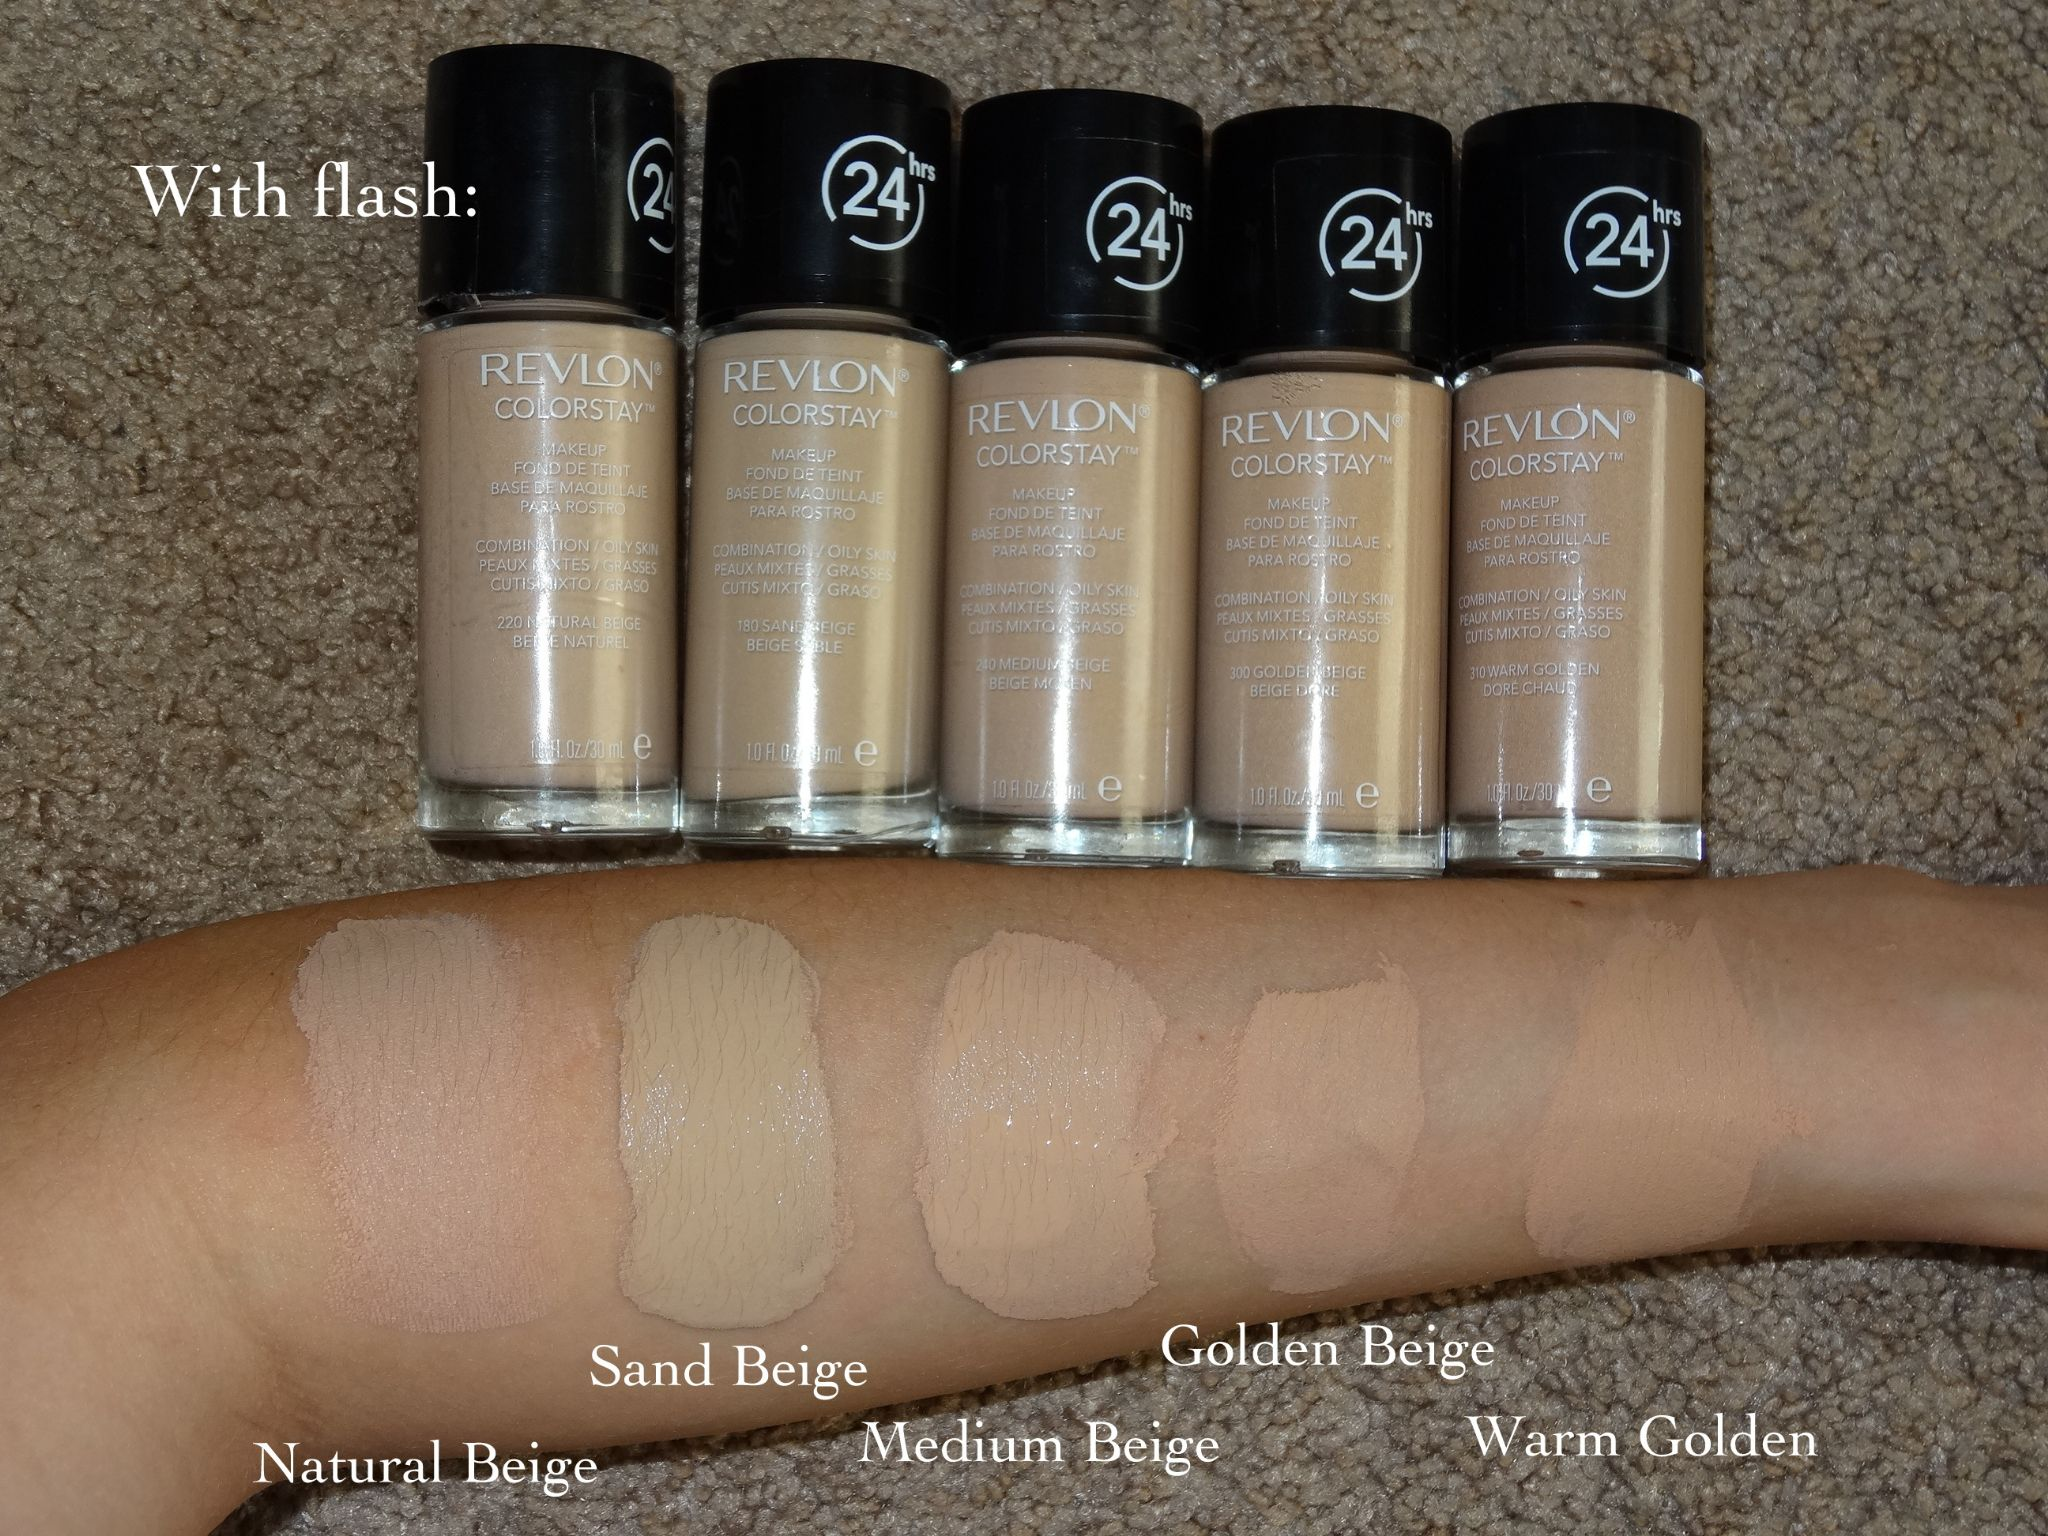 Revlon Colorstay 24hrs Makeup Spf 15 Combination Oily Skin Reviews Photos Ingredients Makeupalley